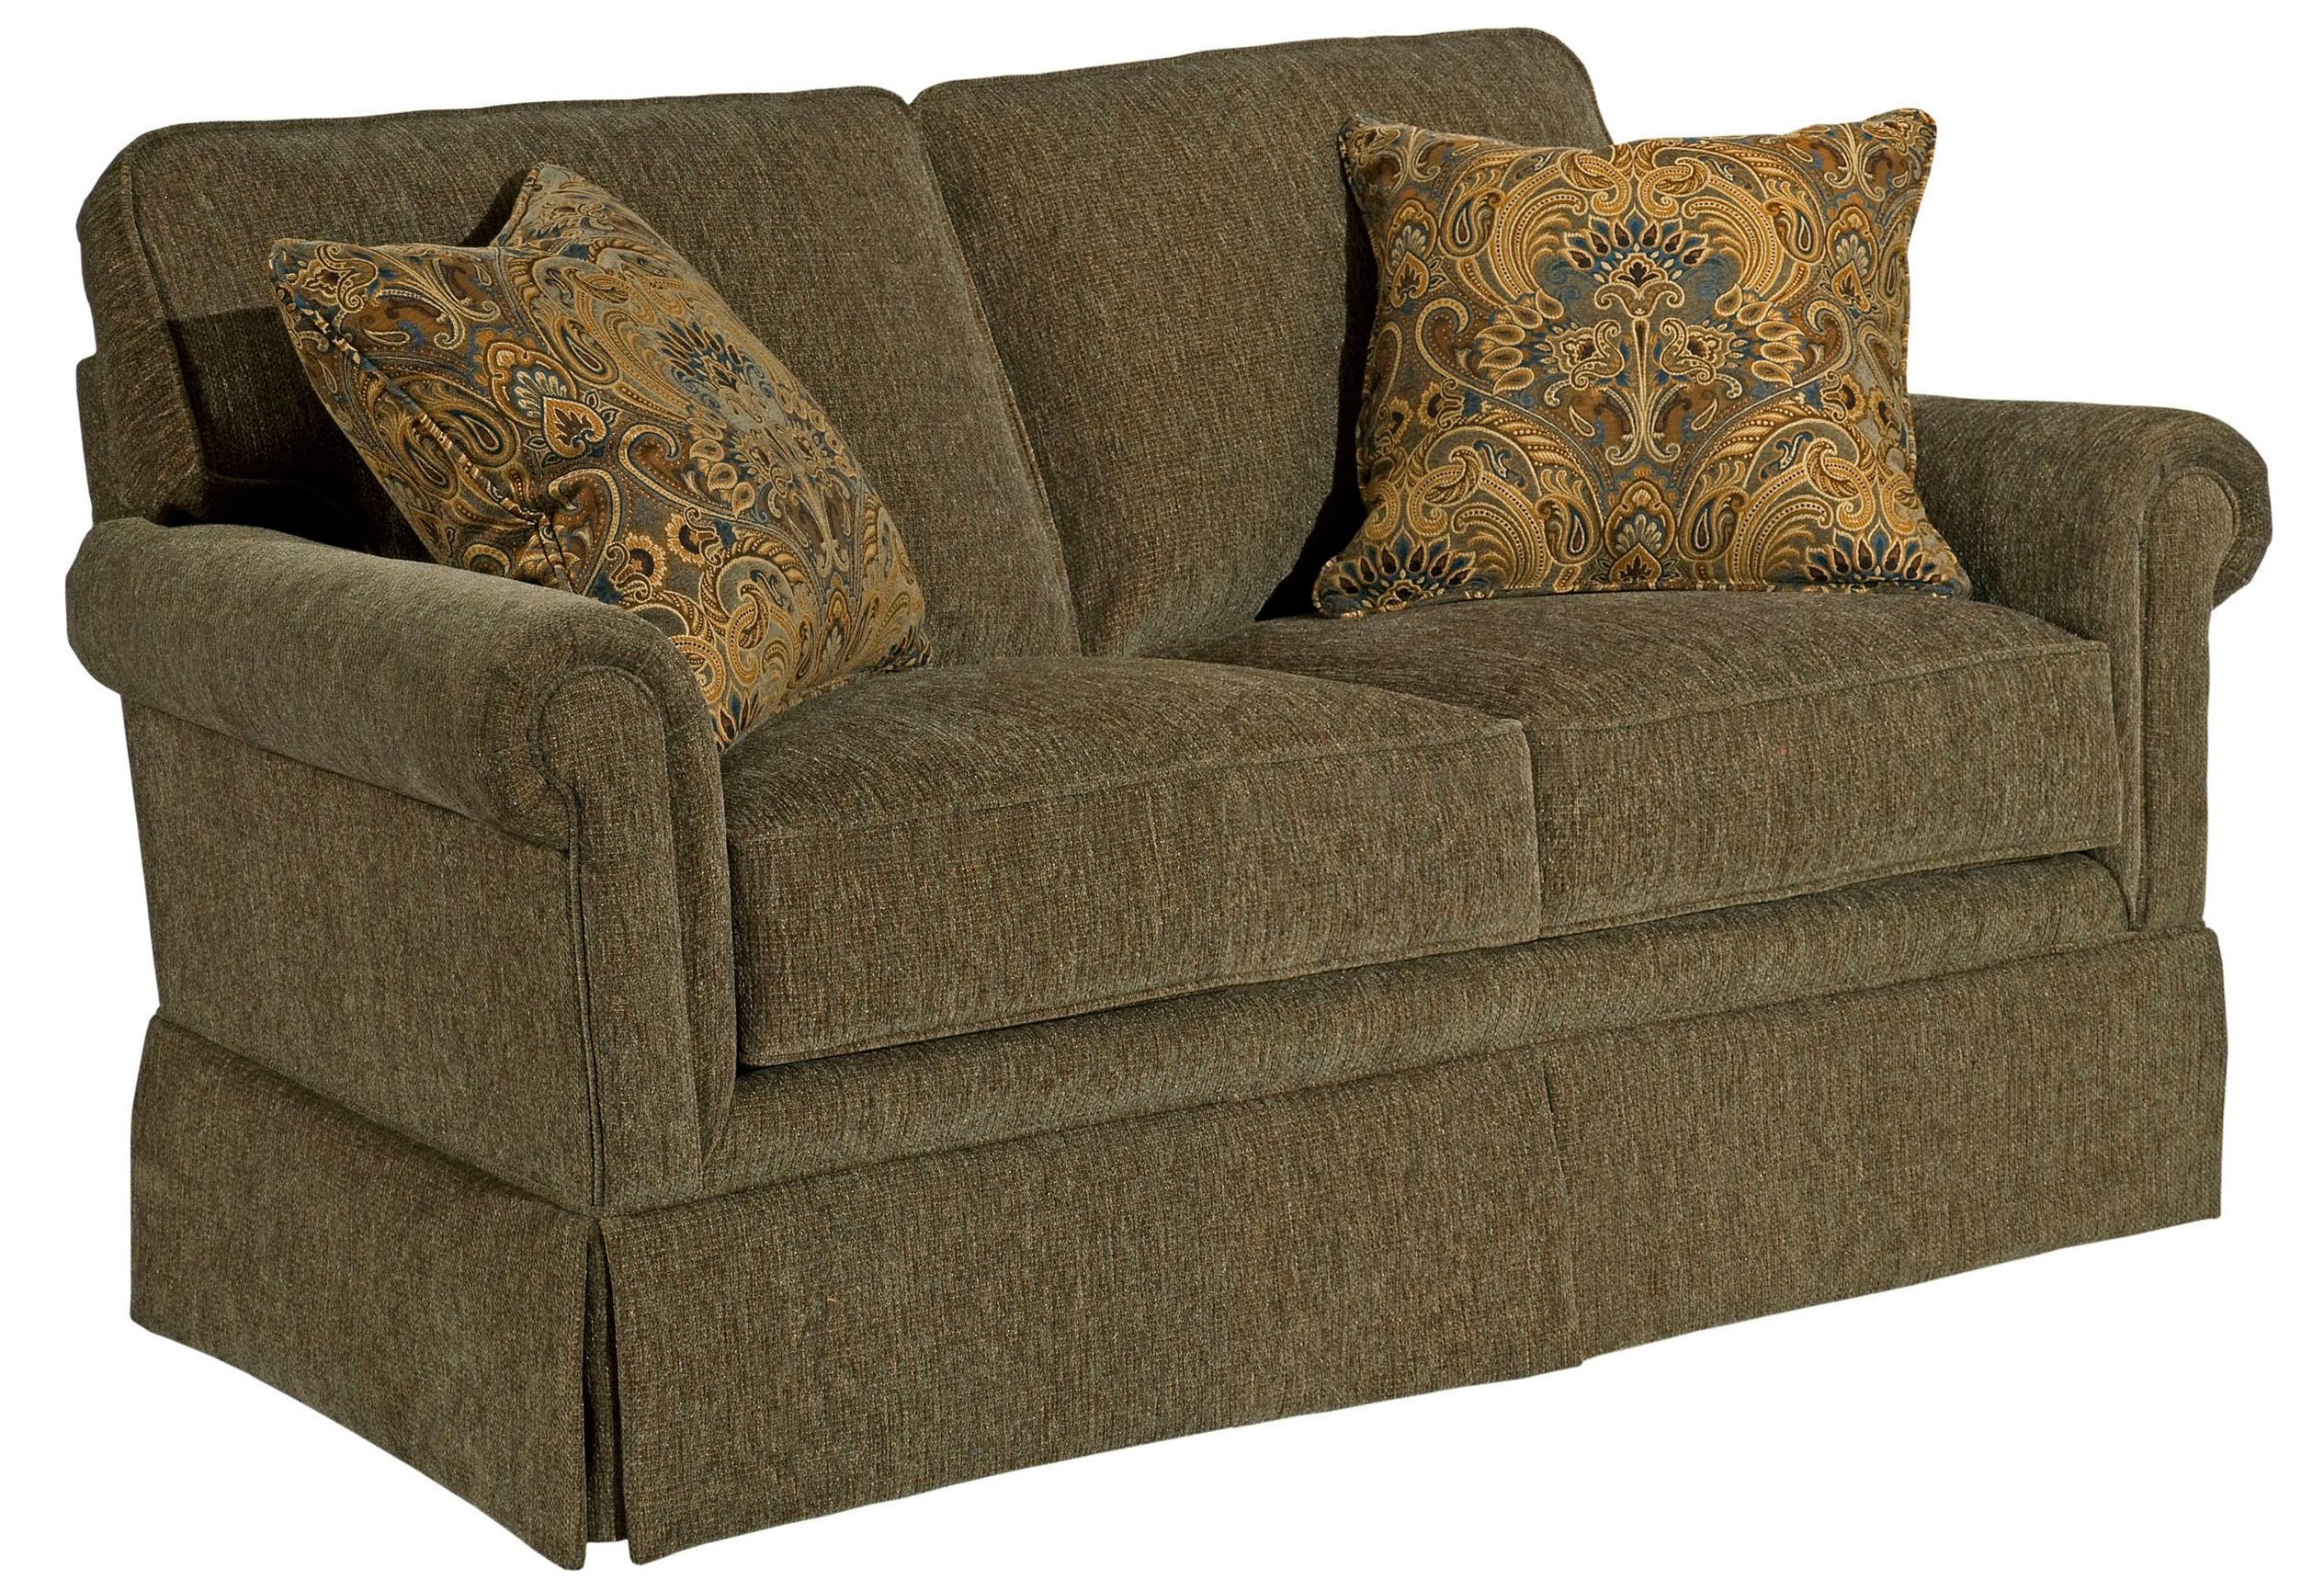 Broyhill Furniture Audrey Upholstered Love Seat - Item Number: 3762-1